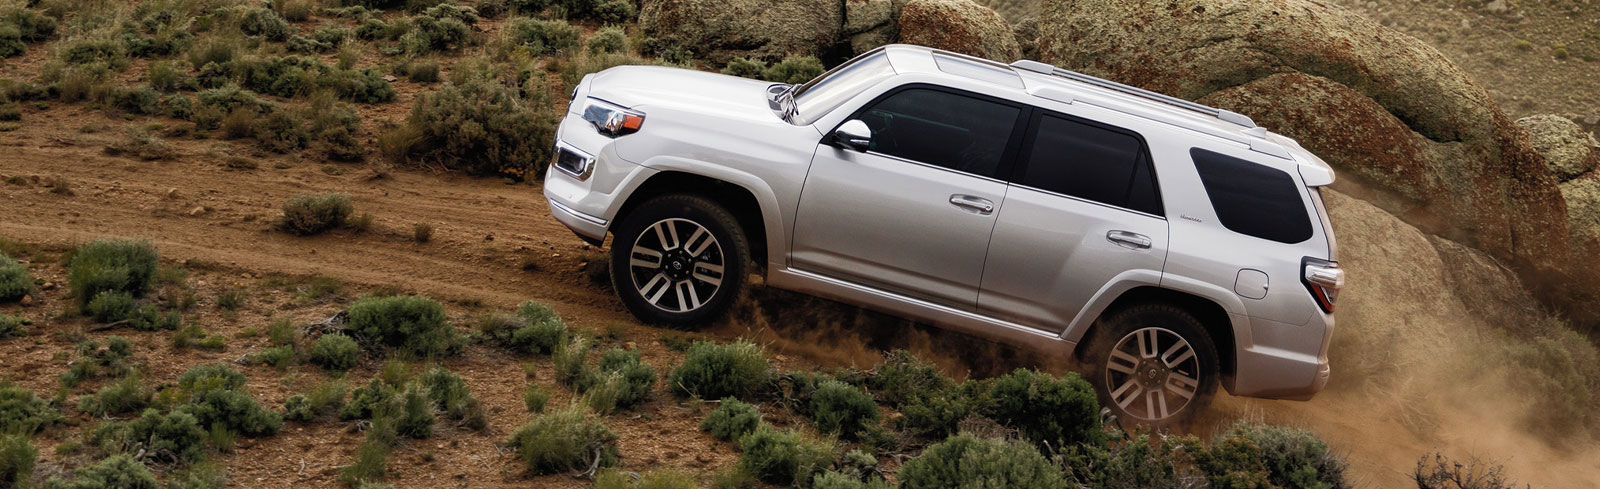 2020 Toyota 4Runner SUV in Cleveland, Ohio, at Motorcars Toyota